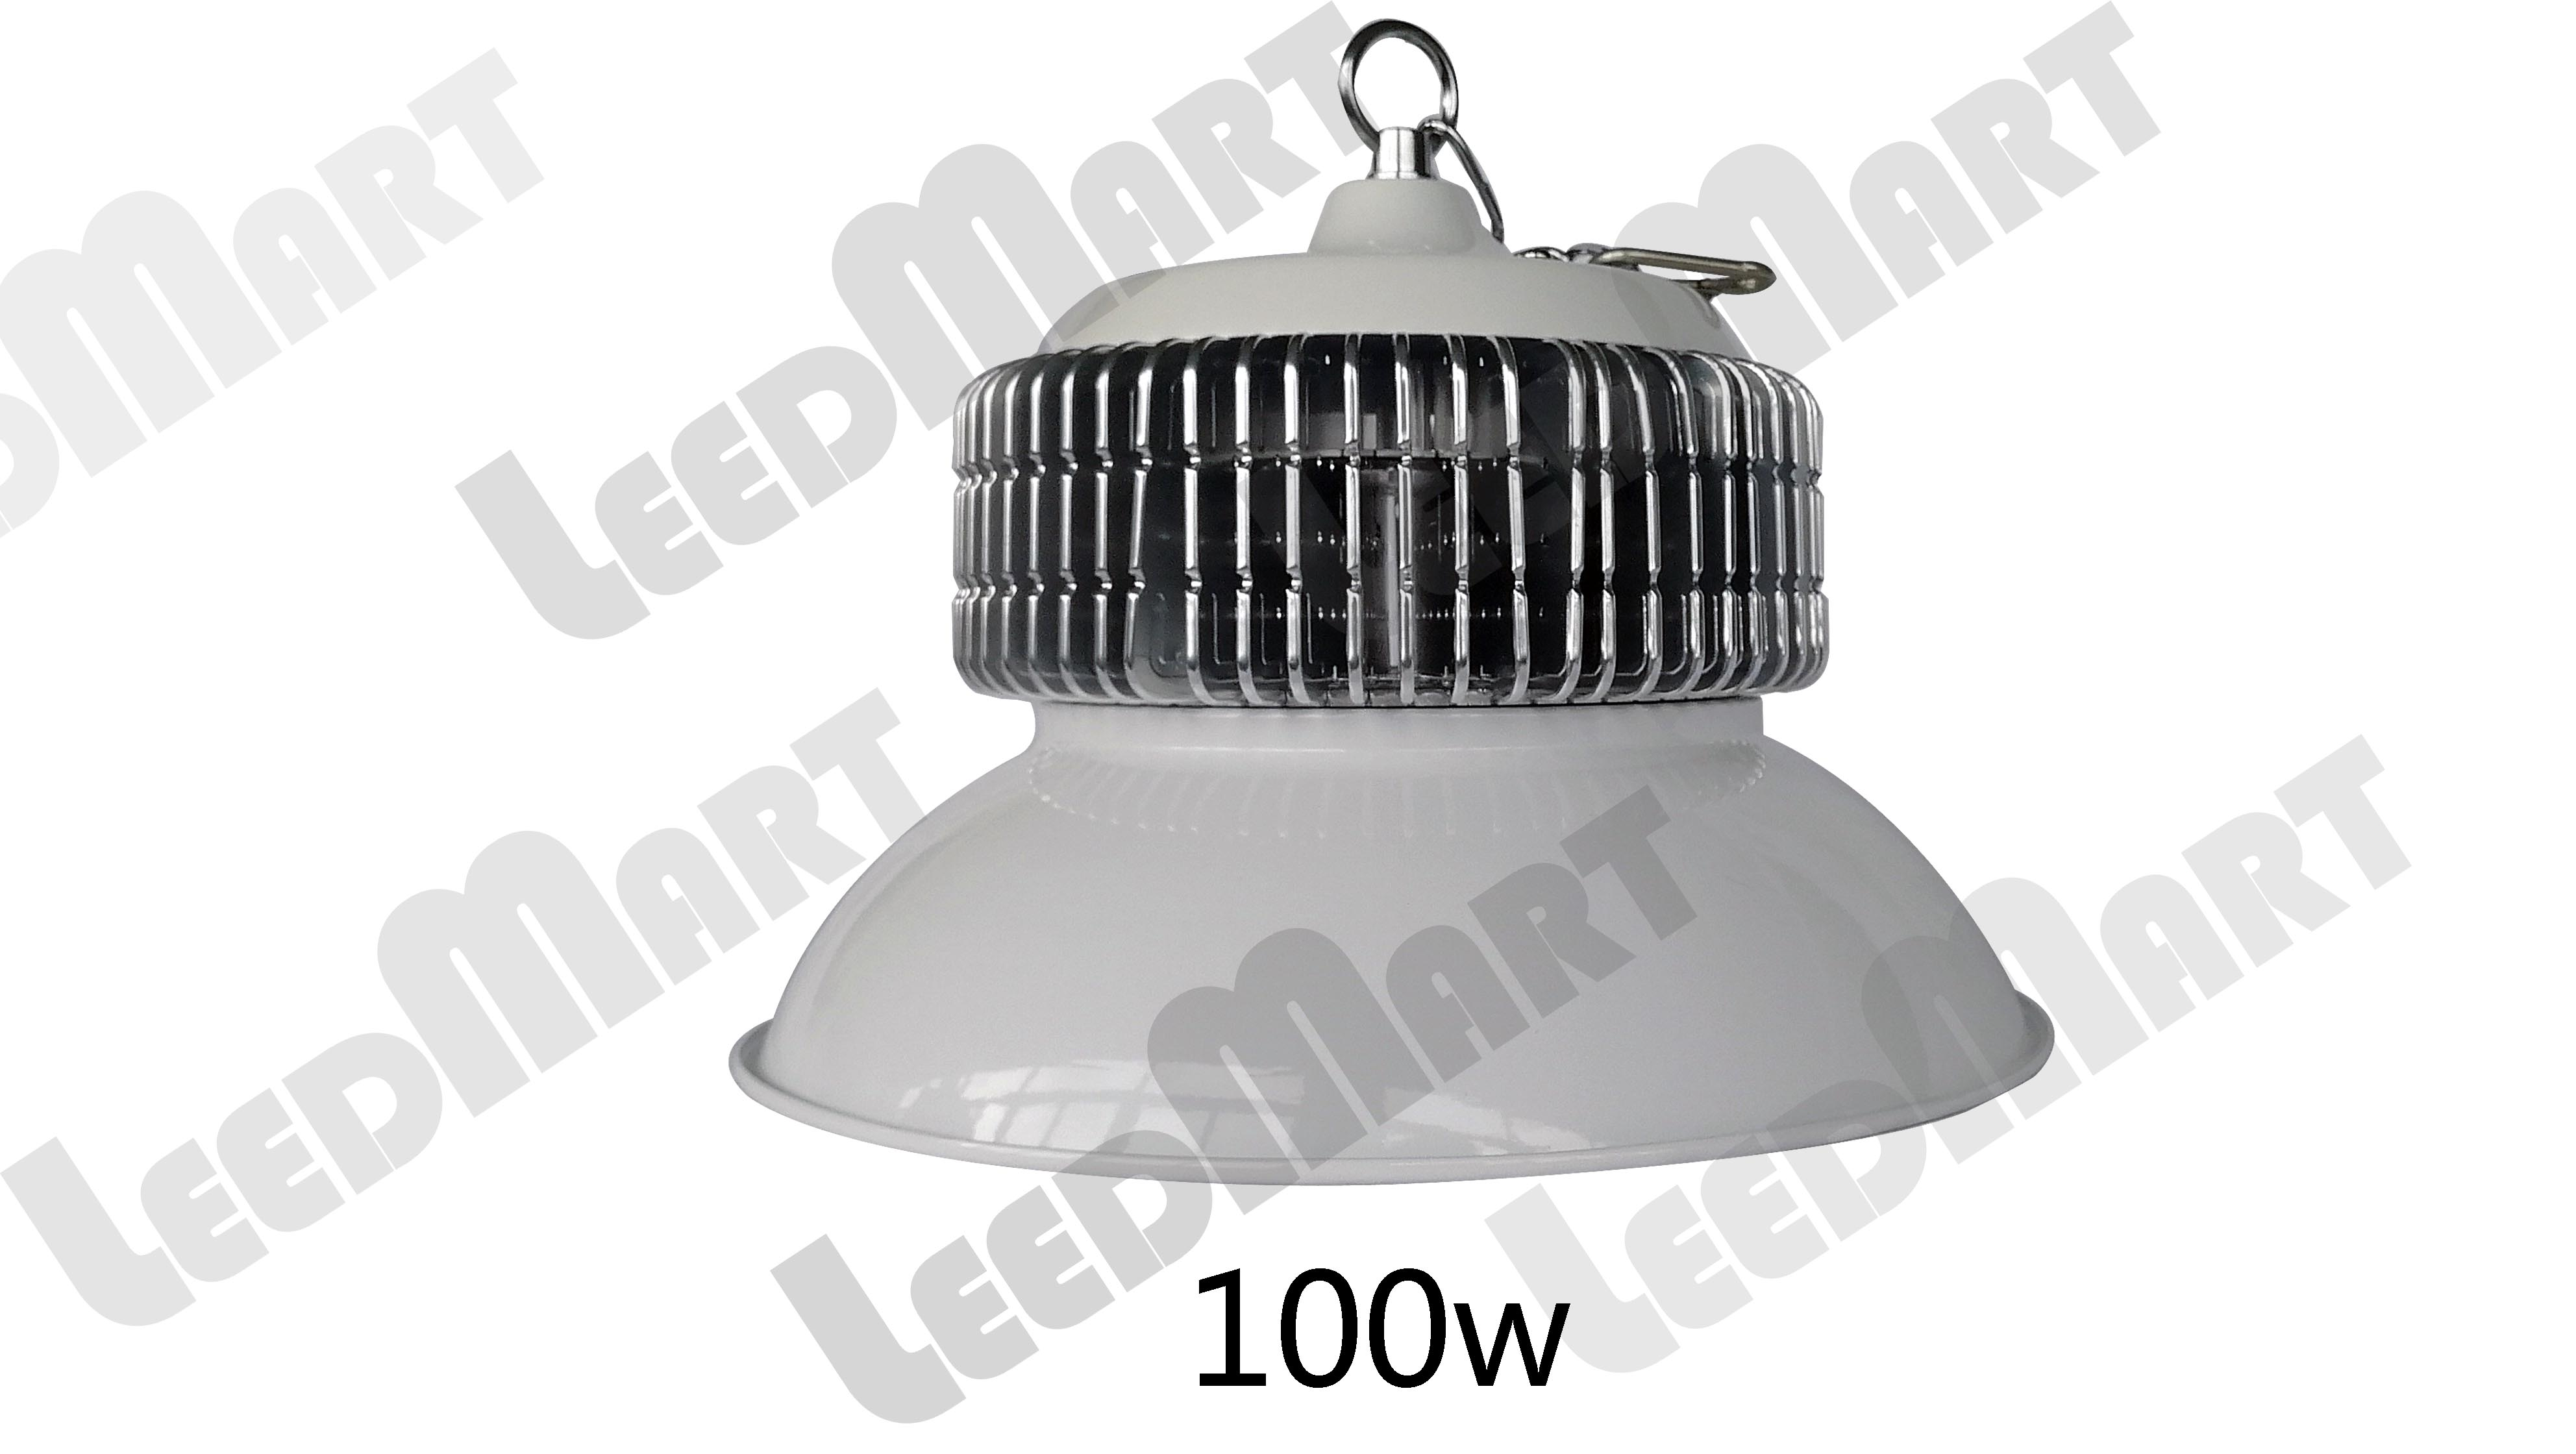 Cost effective 100w-250w LED high bay light with imported LEDs, waterproof MH bulb equivalent industrial lighting